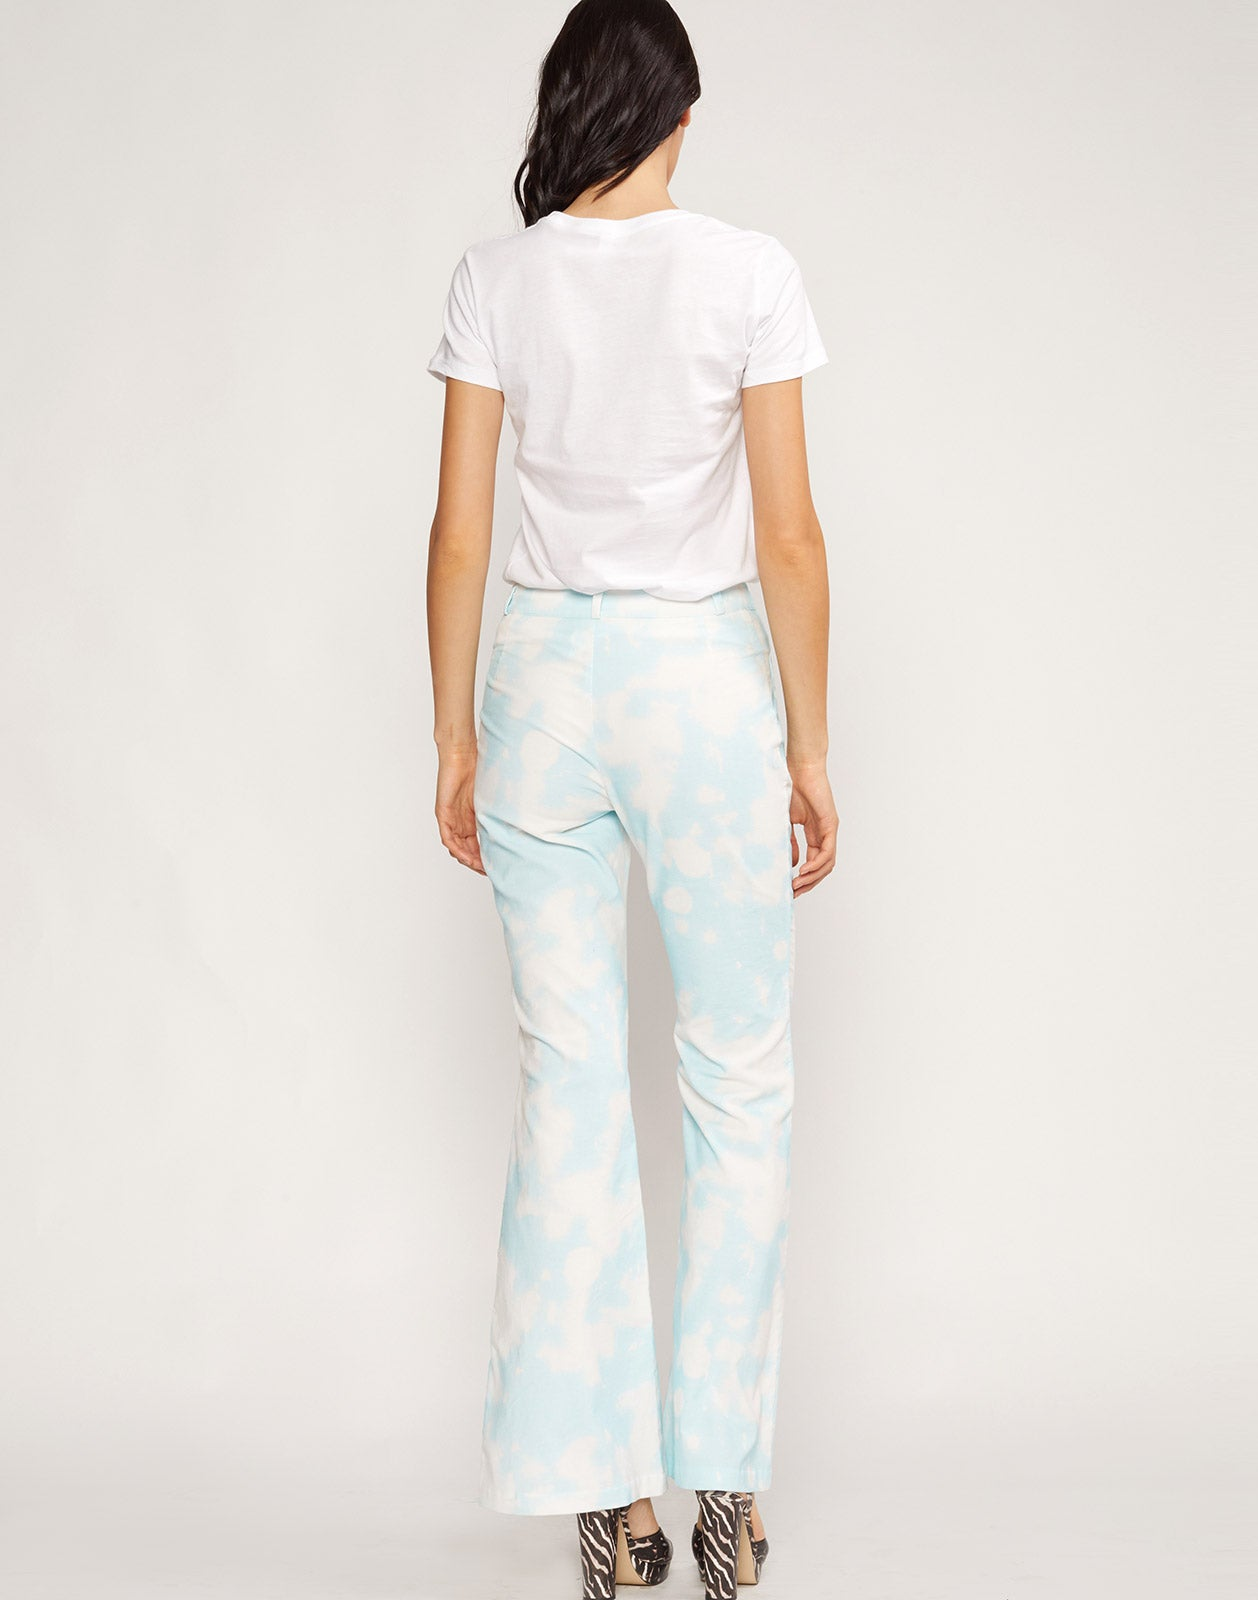 Back view the James Tie Dye Flares